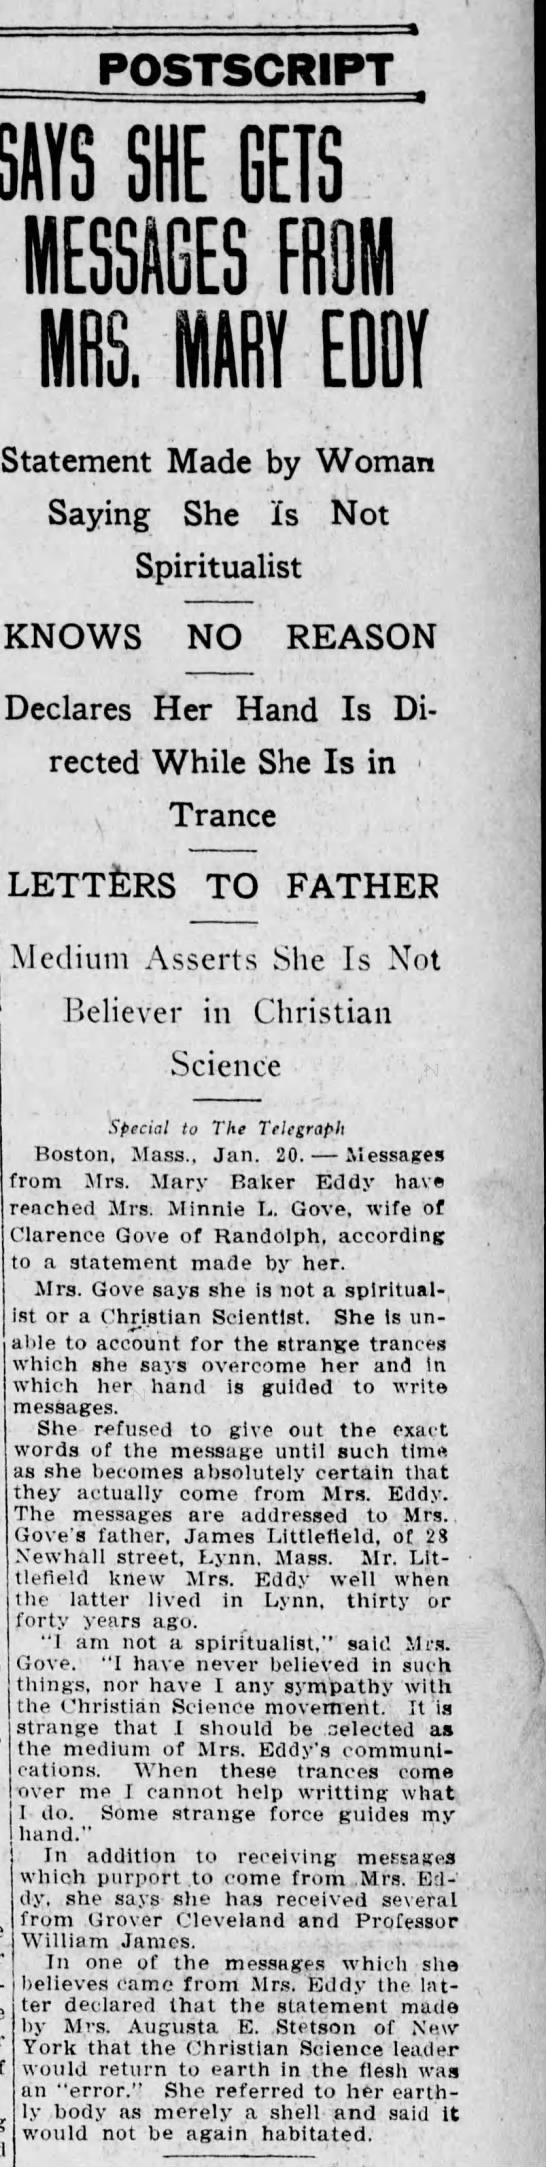 Harrisonburg Telegraph jan 11, 1911 -